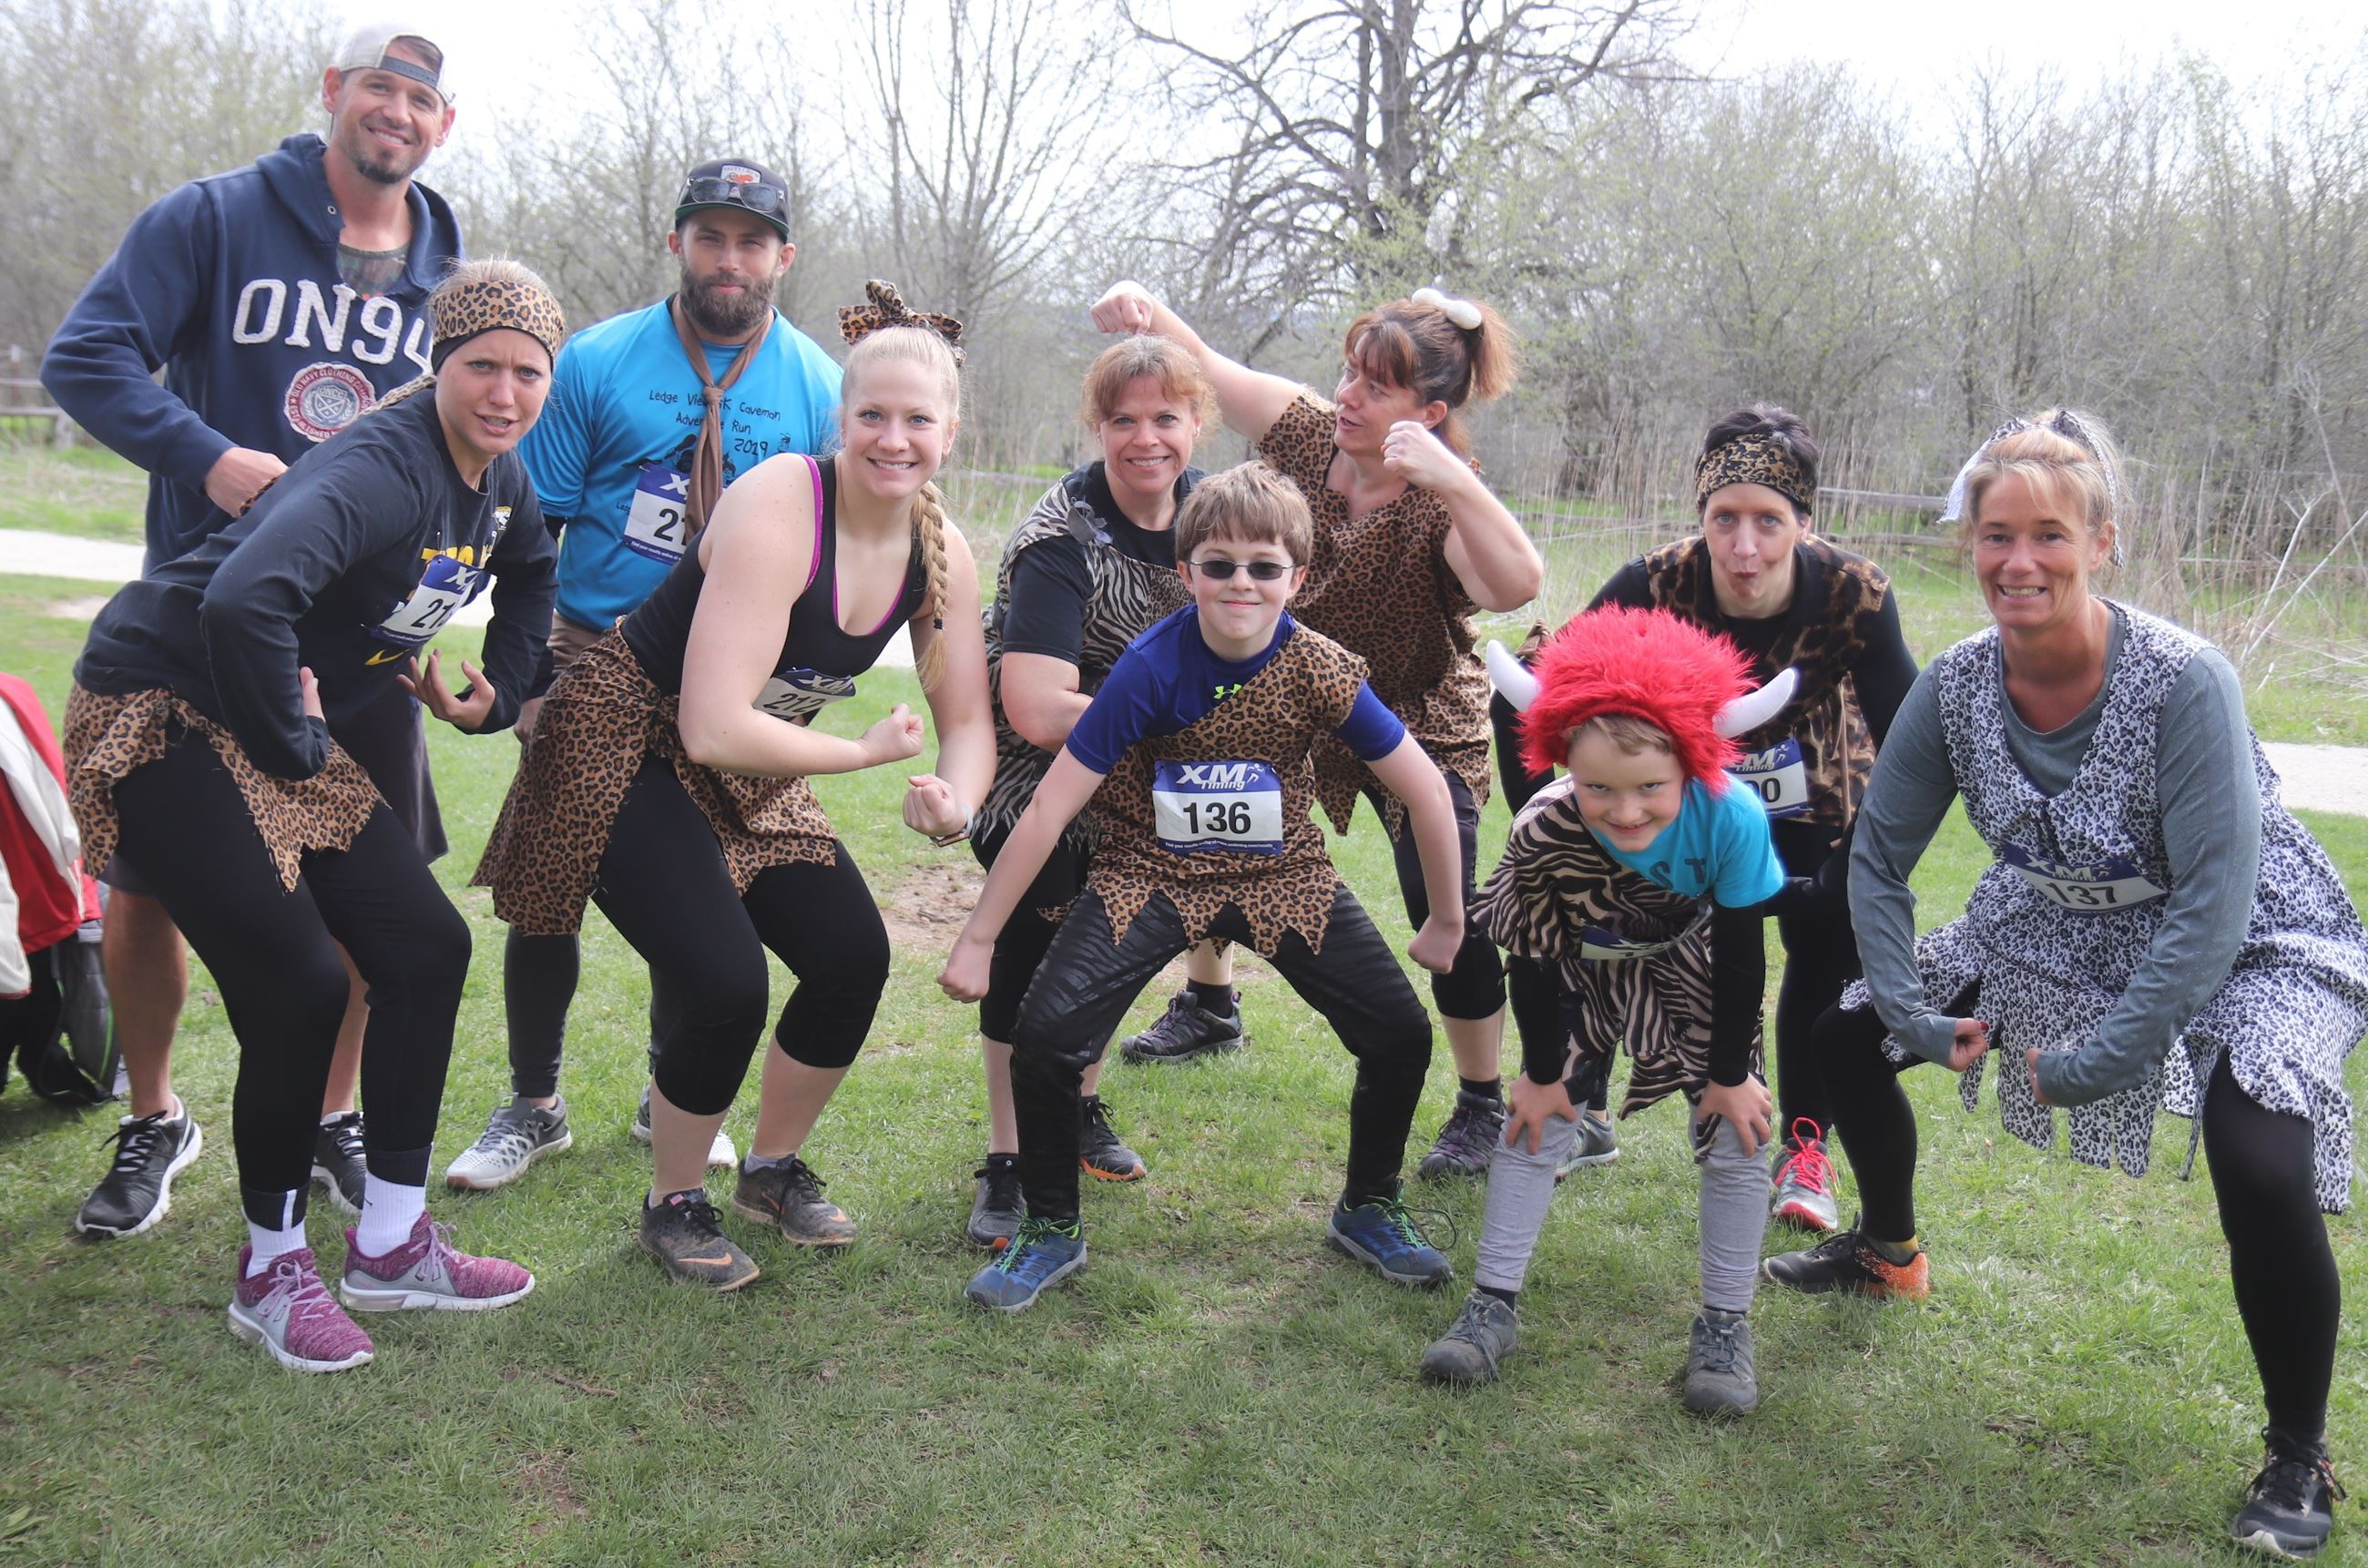 10 people posing in caveman costumes before a race